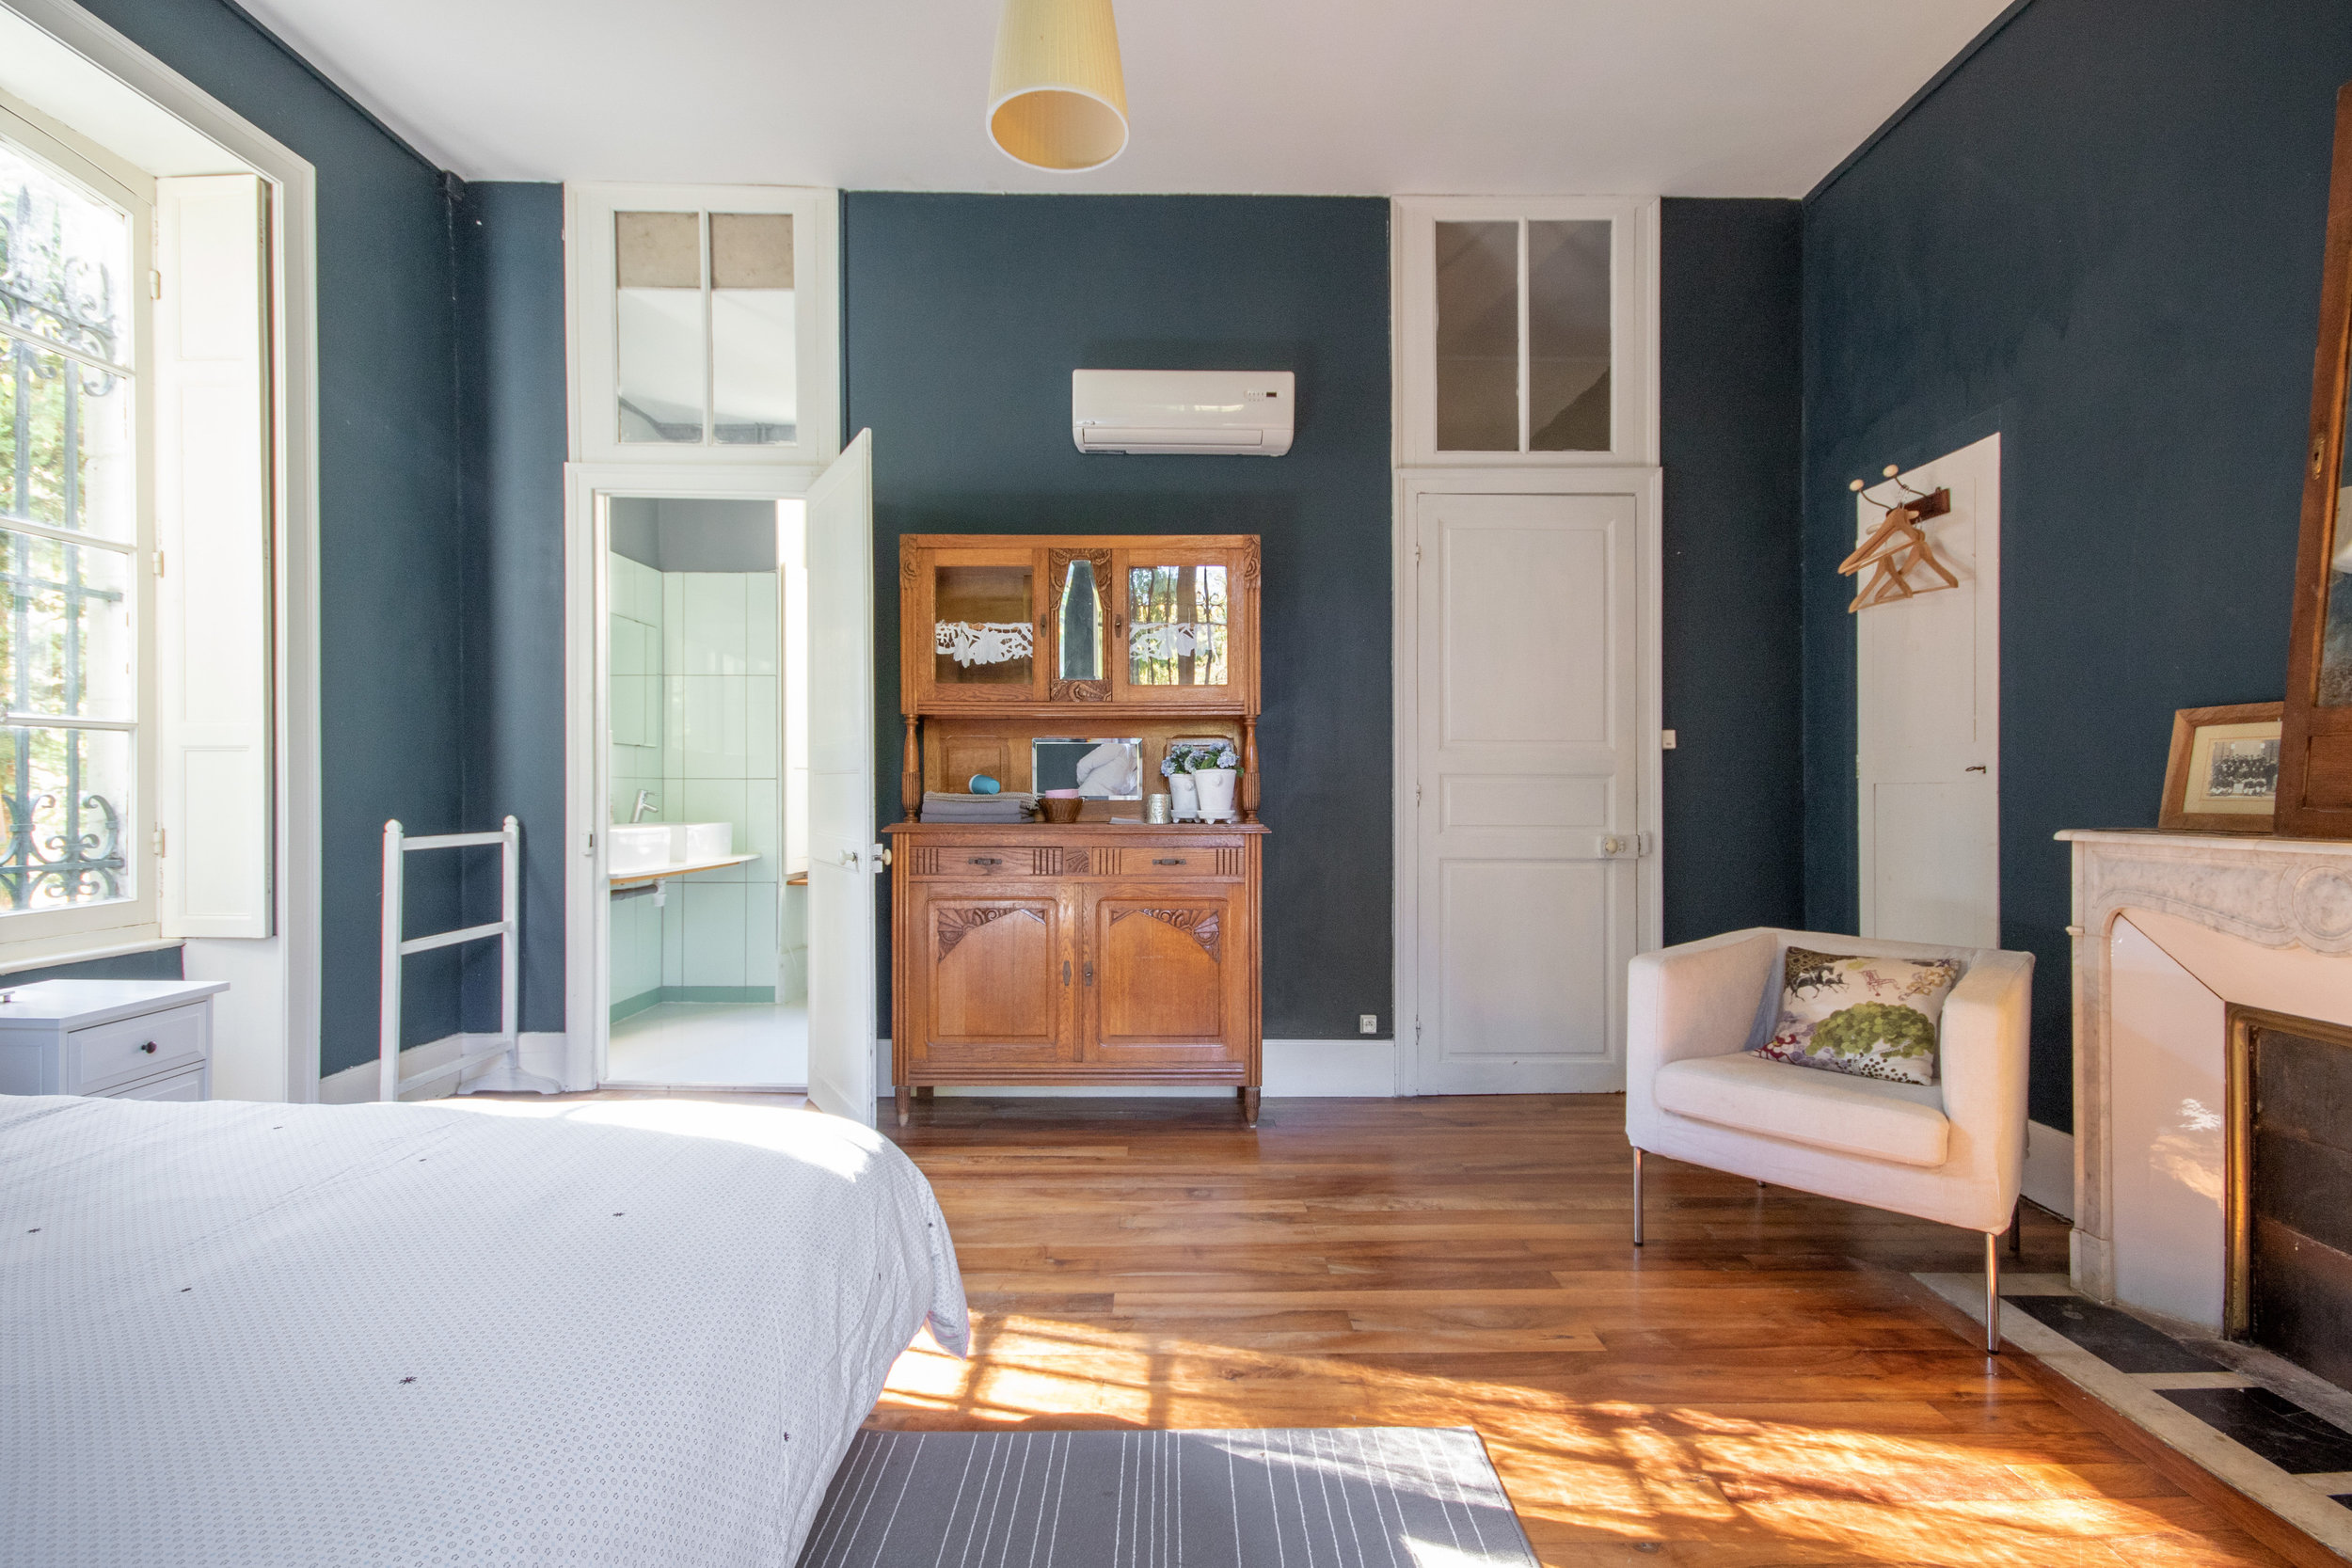 One of the two spacious rooms that'll join together as a Family Wing : lots of space in both rooms, so it could be even possible to host 1 or 2 extra kids per room.